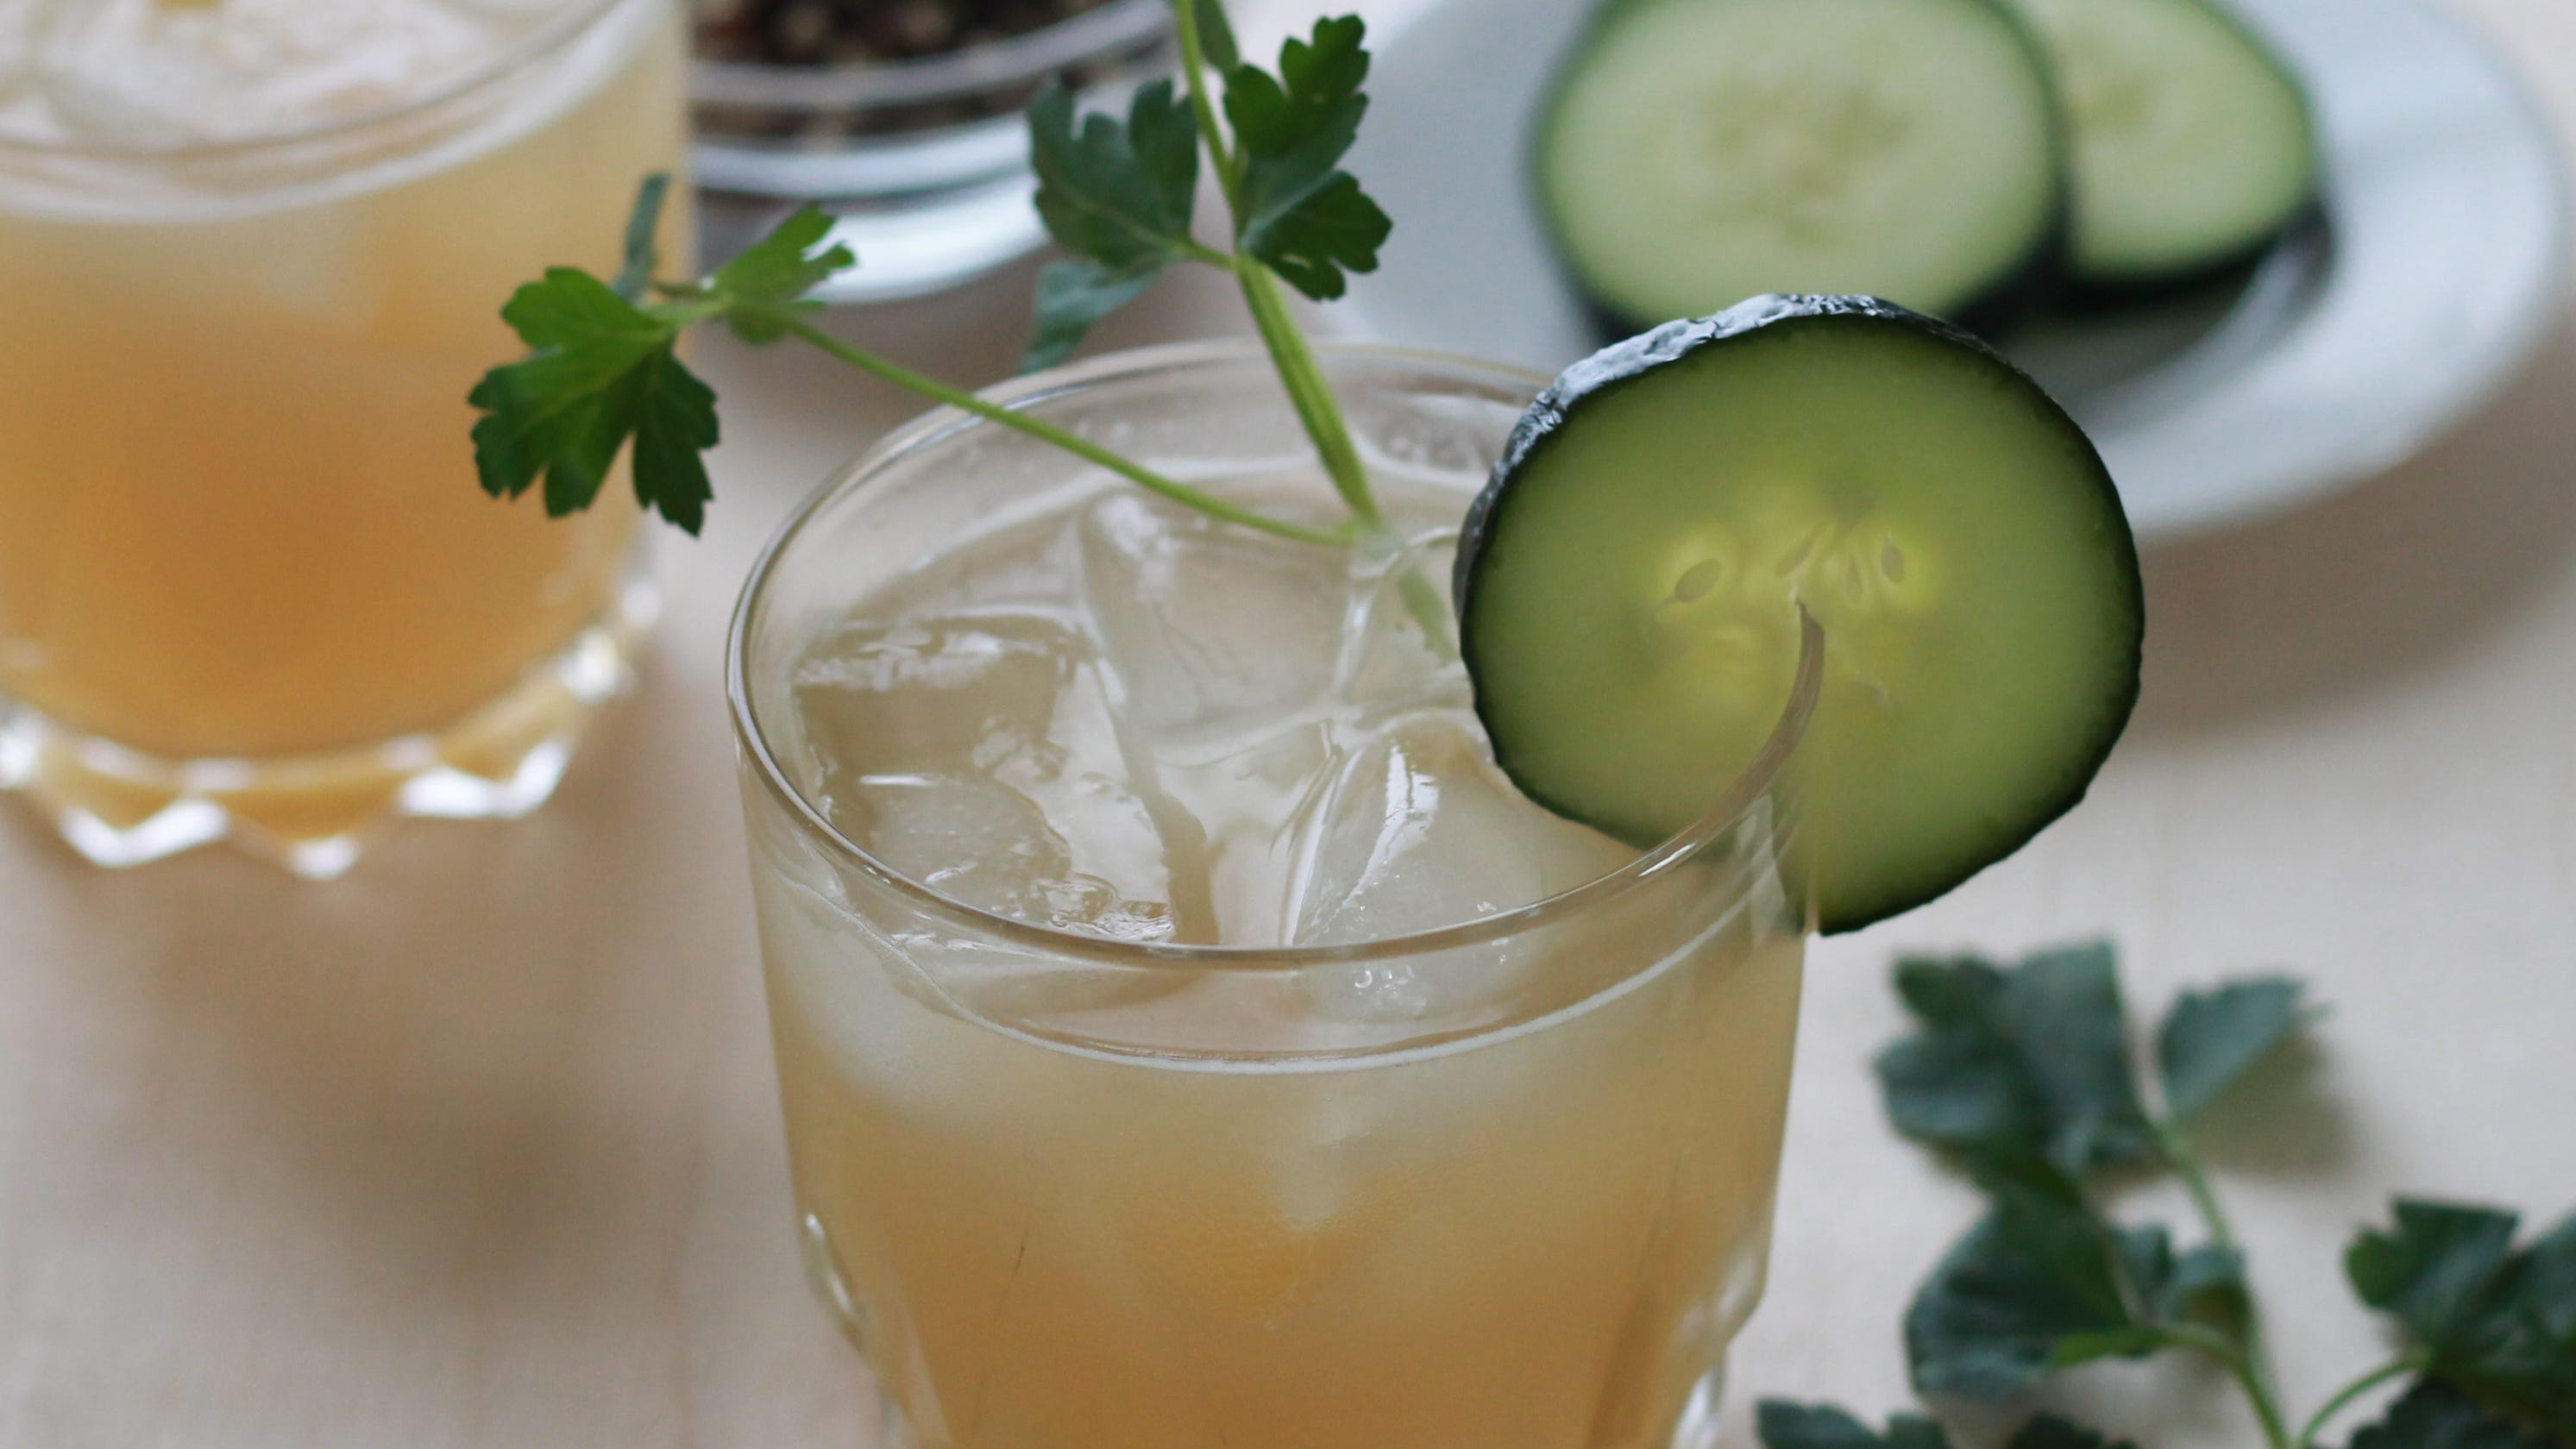 This gin cocktail made with black pepper and cilantro syrup is a perfect spring sipper